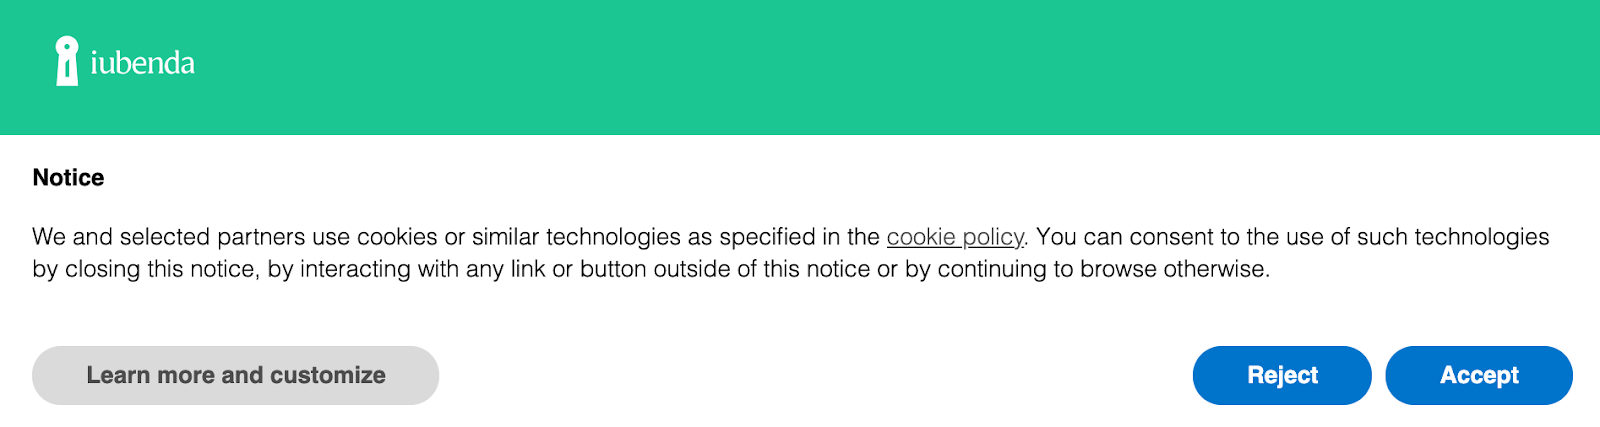 notice text about cookie policy on iubenda's website